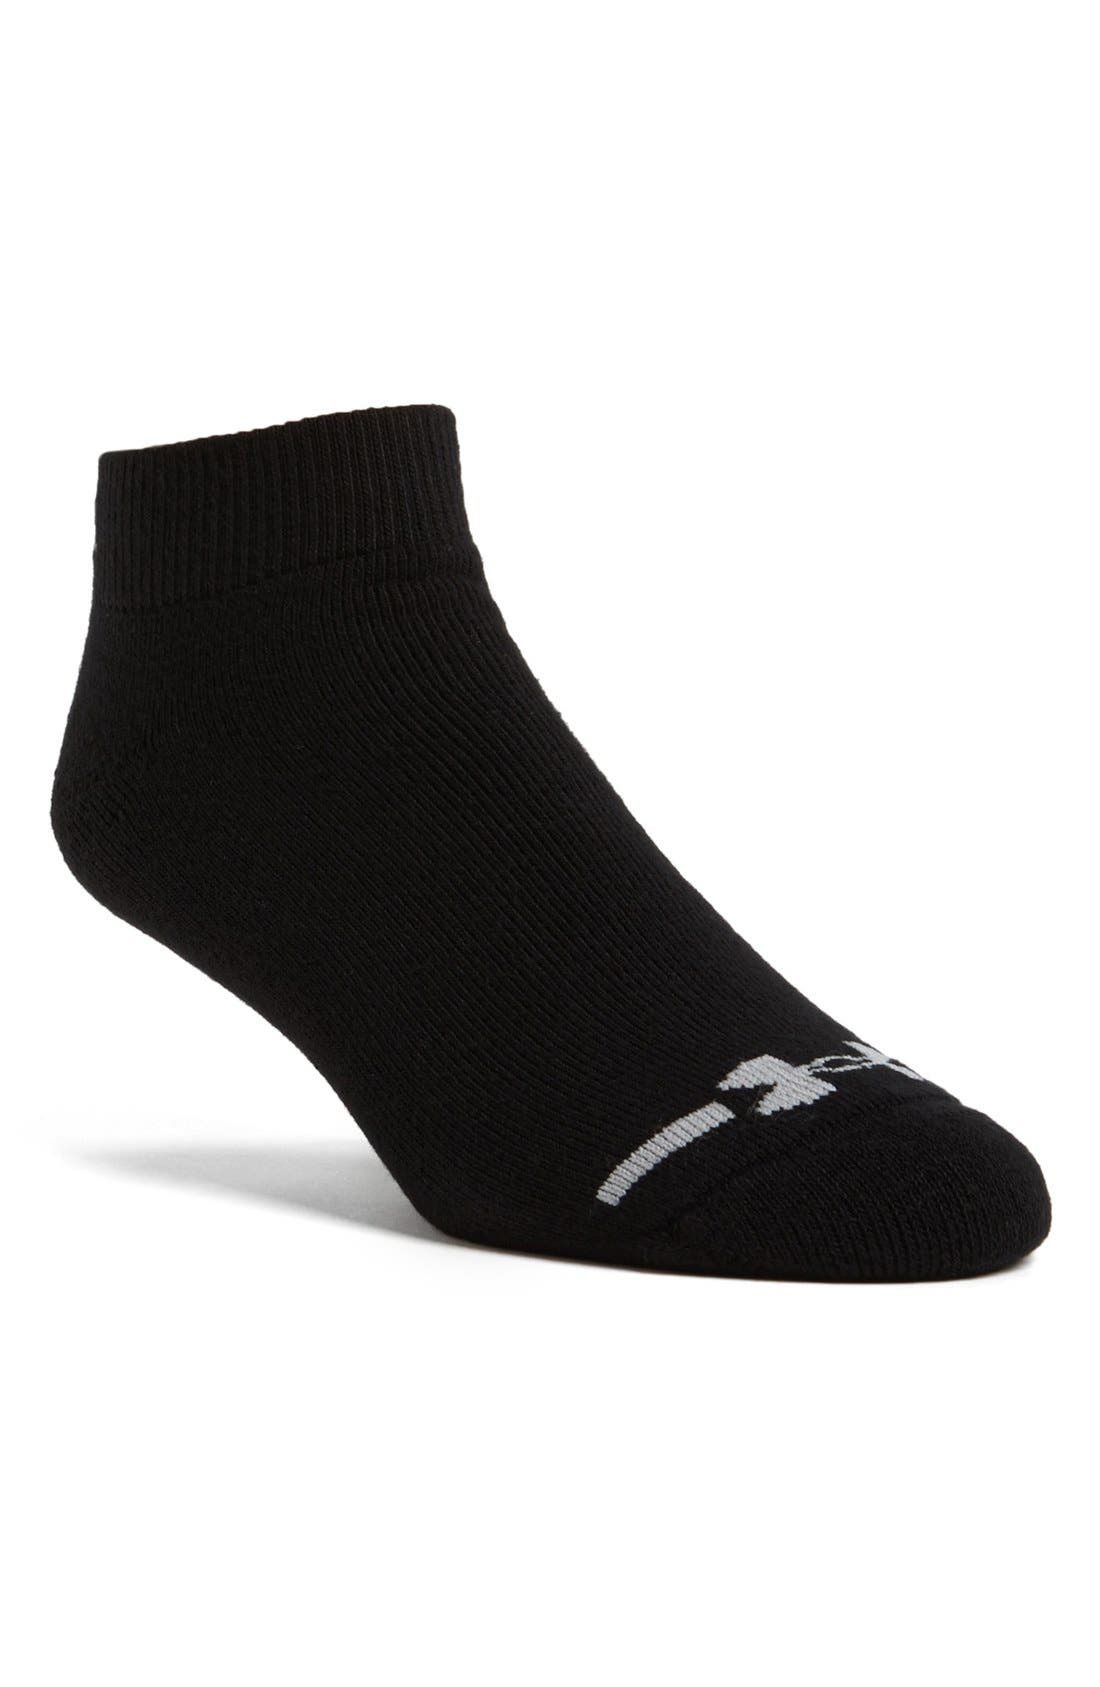 Main Image - Under Armour 'Charged' No Show Socks (6-Pack)